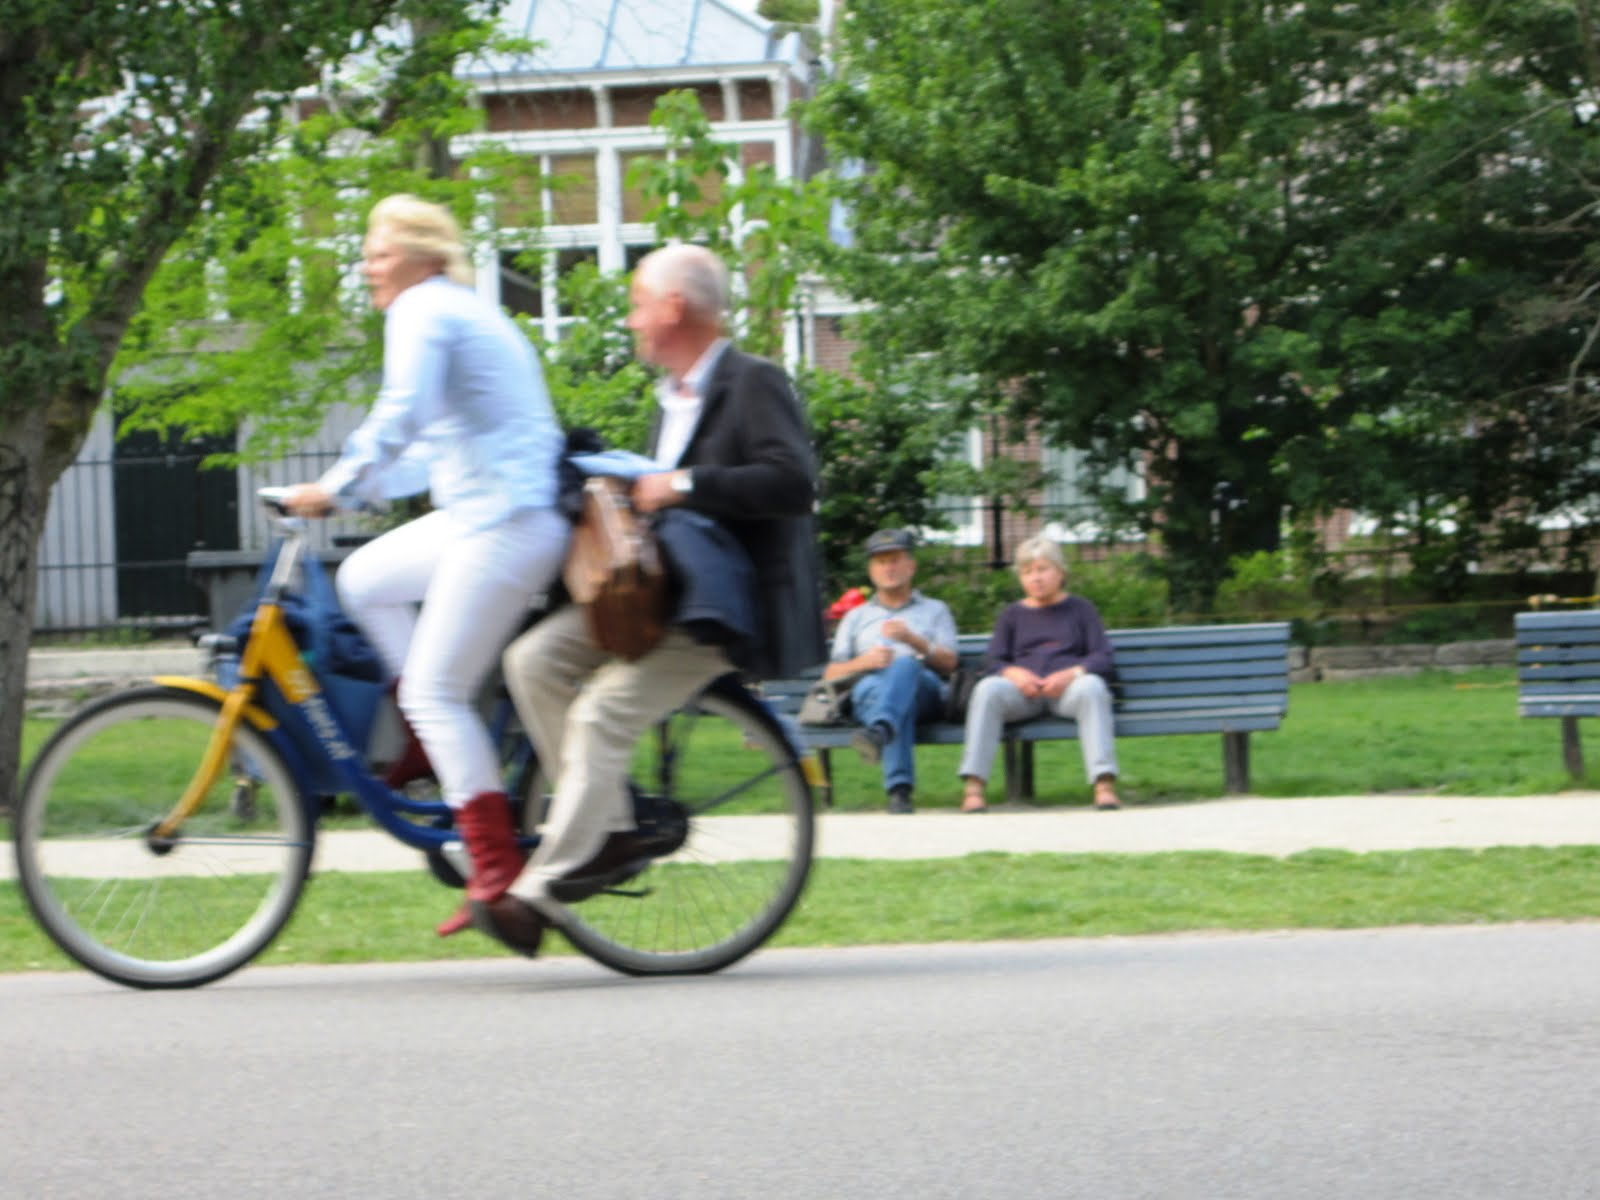 The woman is pedaling along and the well-dressed man is enjoying the ride.